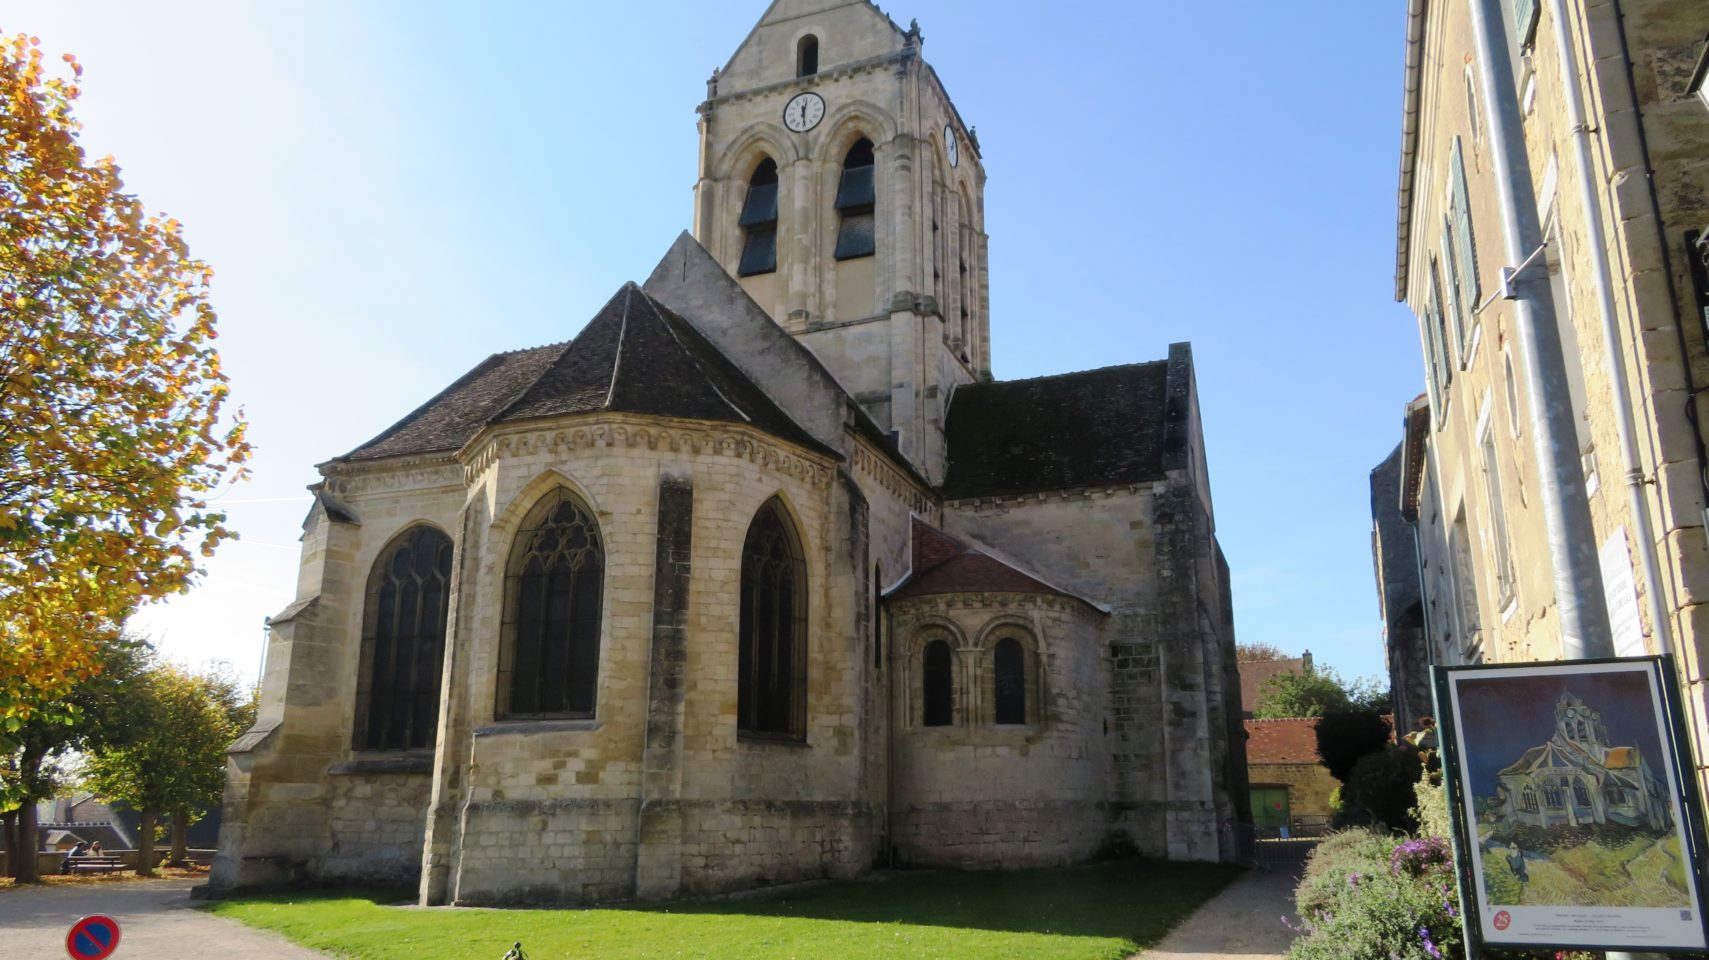 Painted by Vincent Van Gogh, the church of Auvers-sur-Oise, France (Paris and Normandie AMAWaterways Cruise)